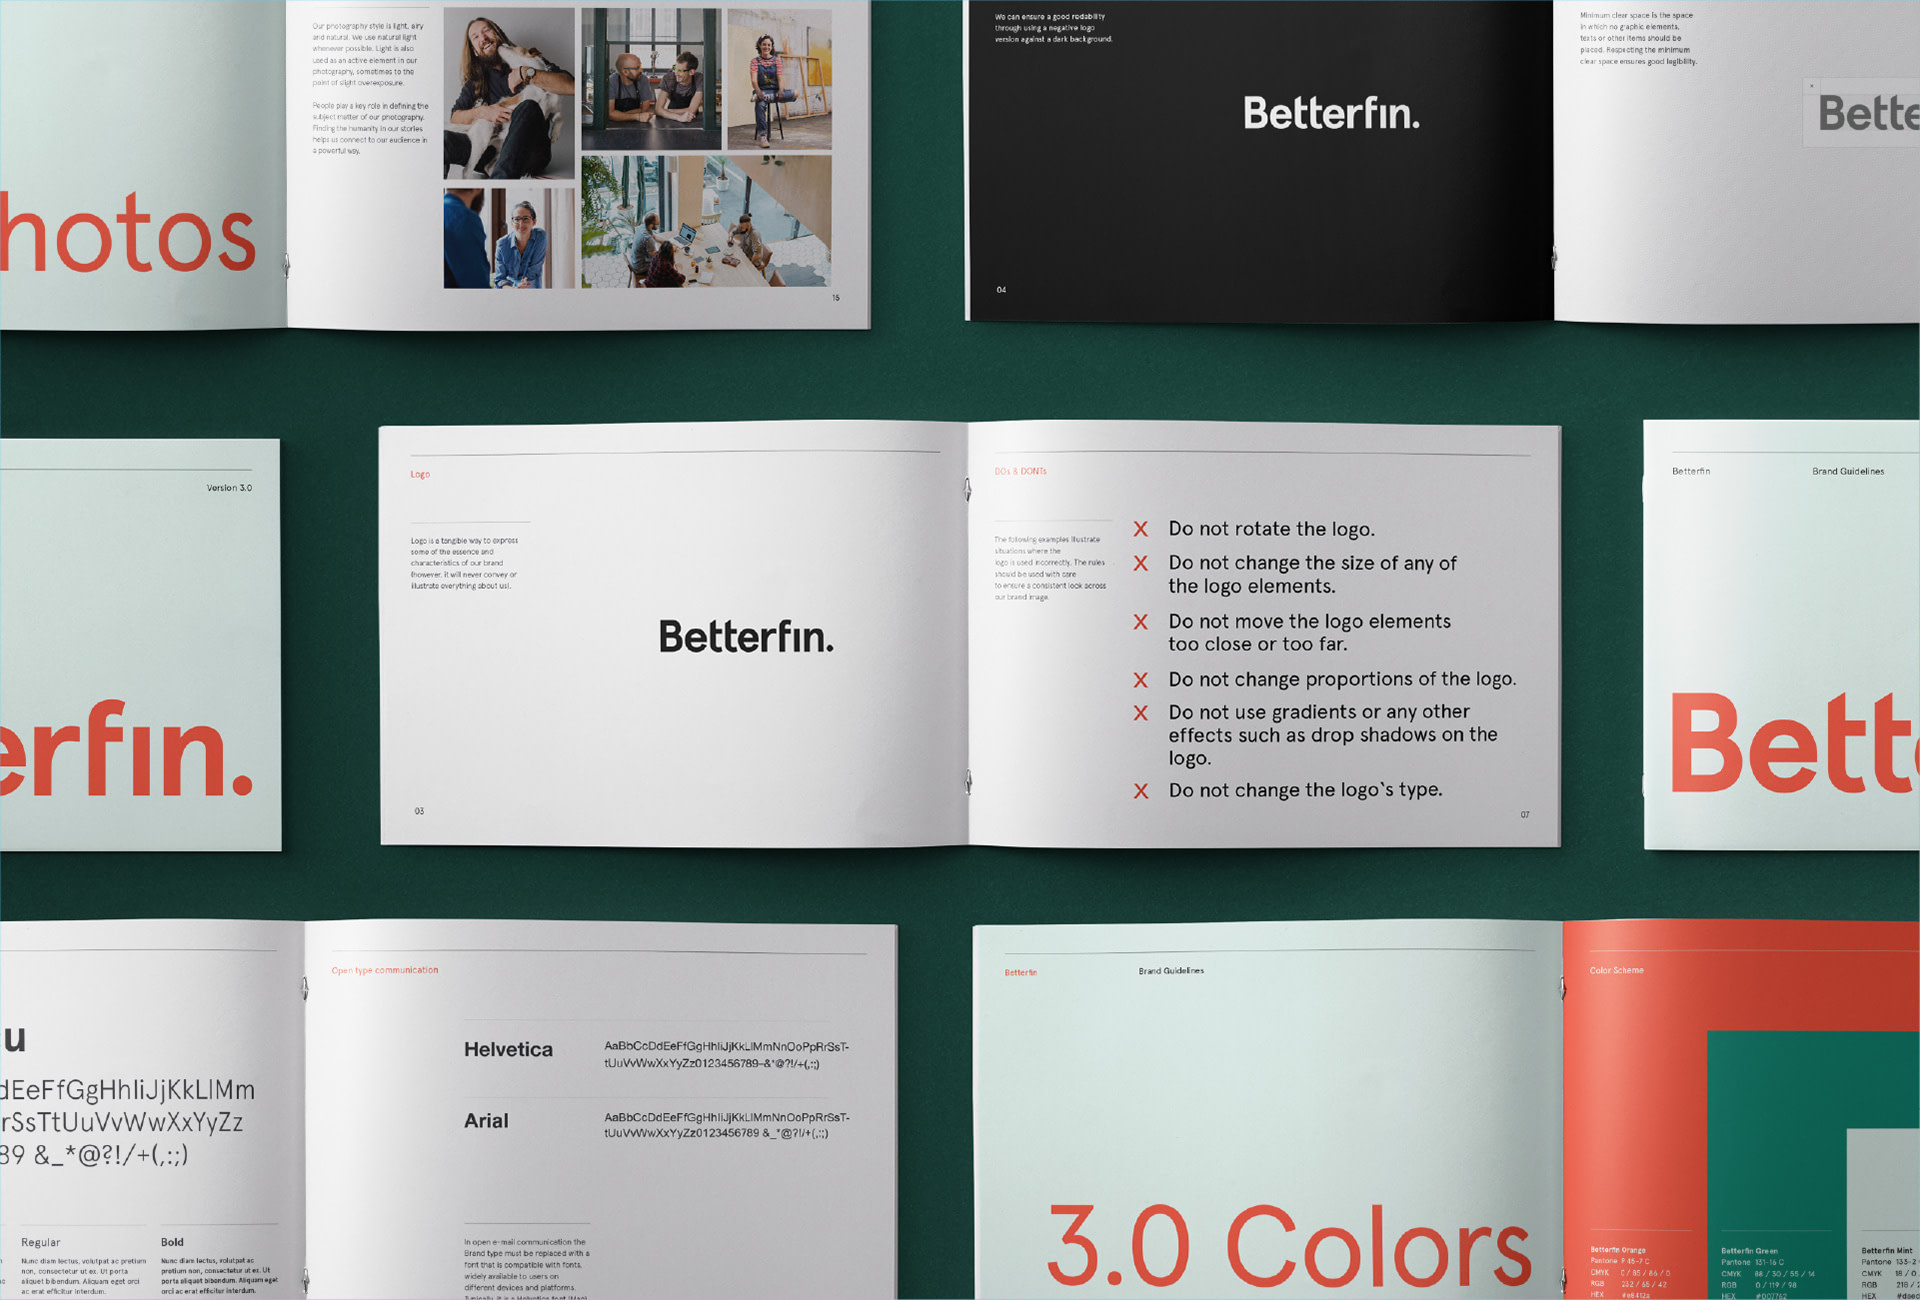 Betterfin - Case - Study - Brand-Guidelines-book